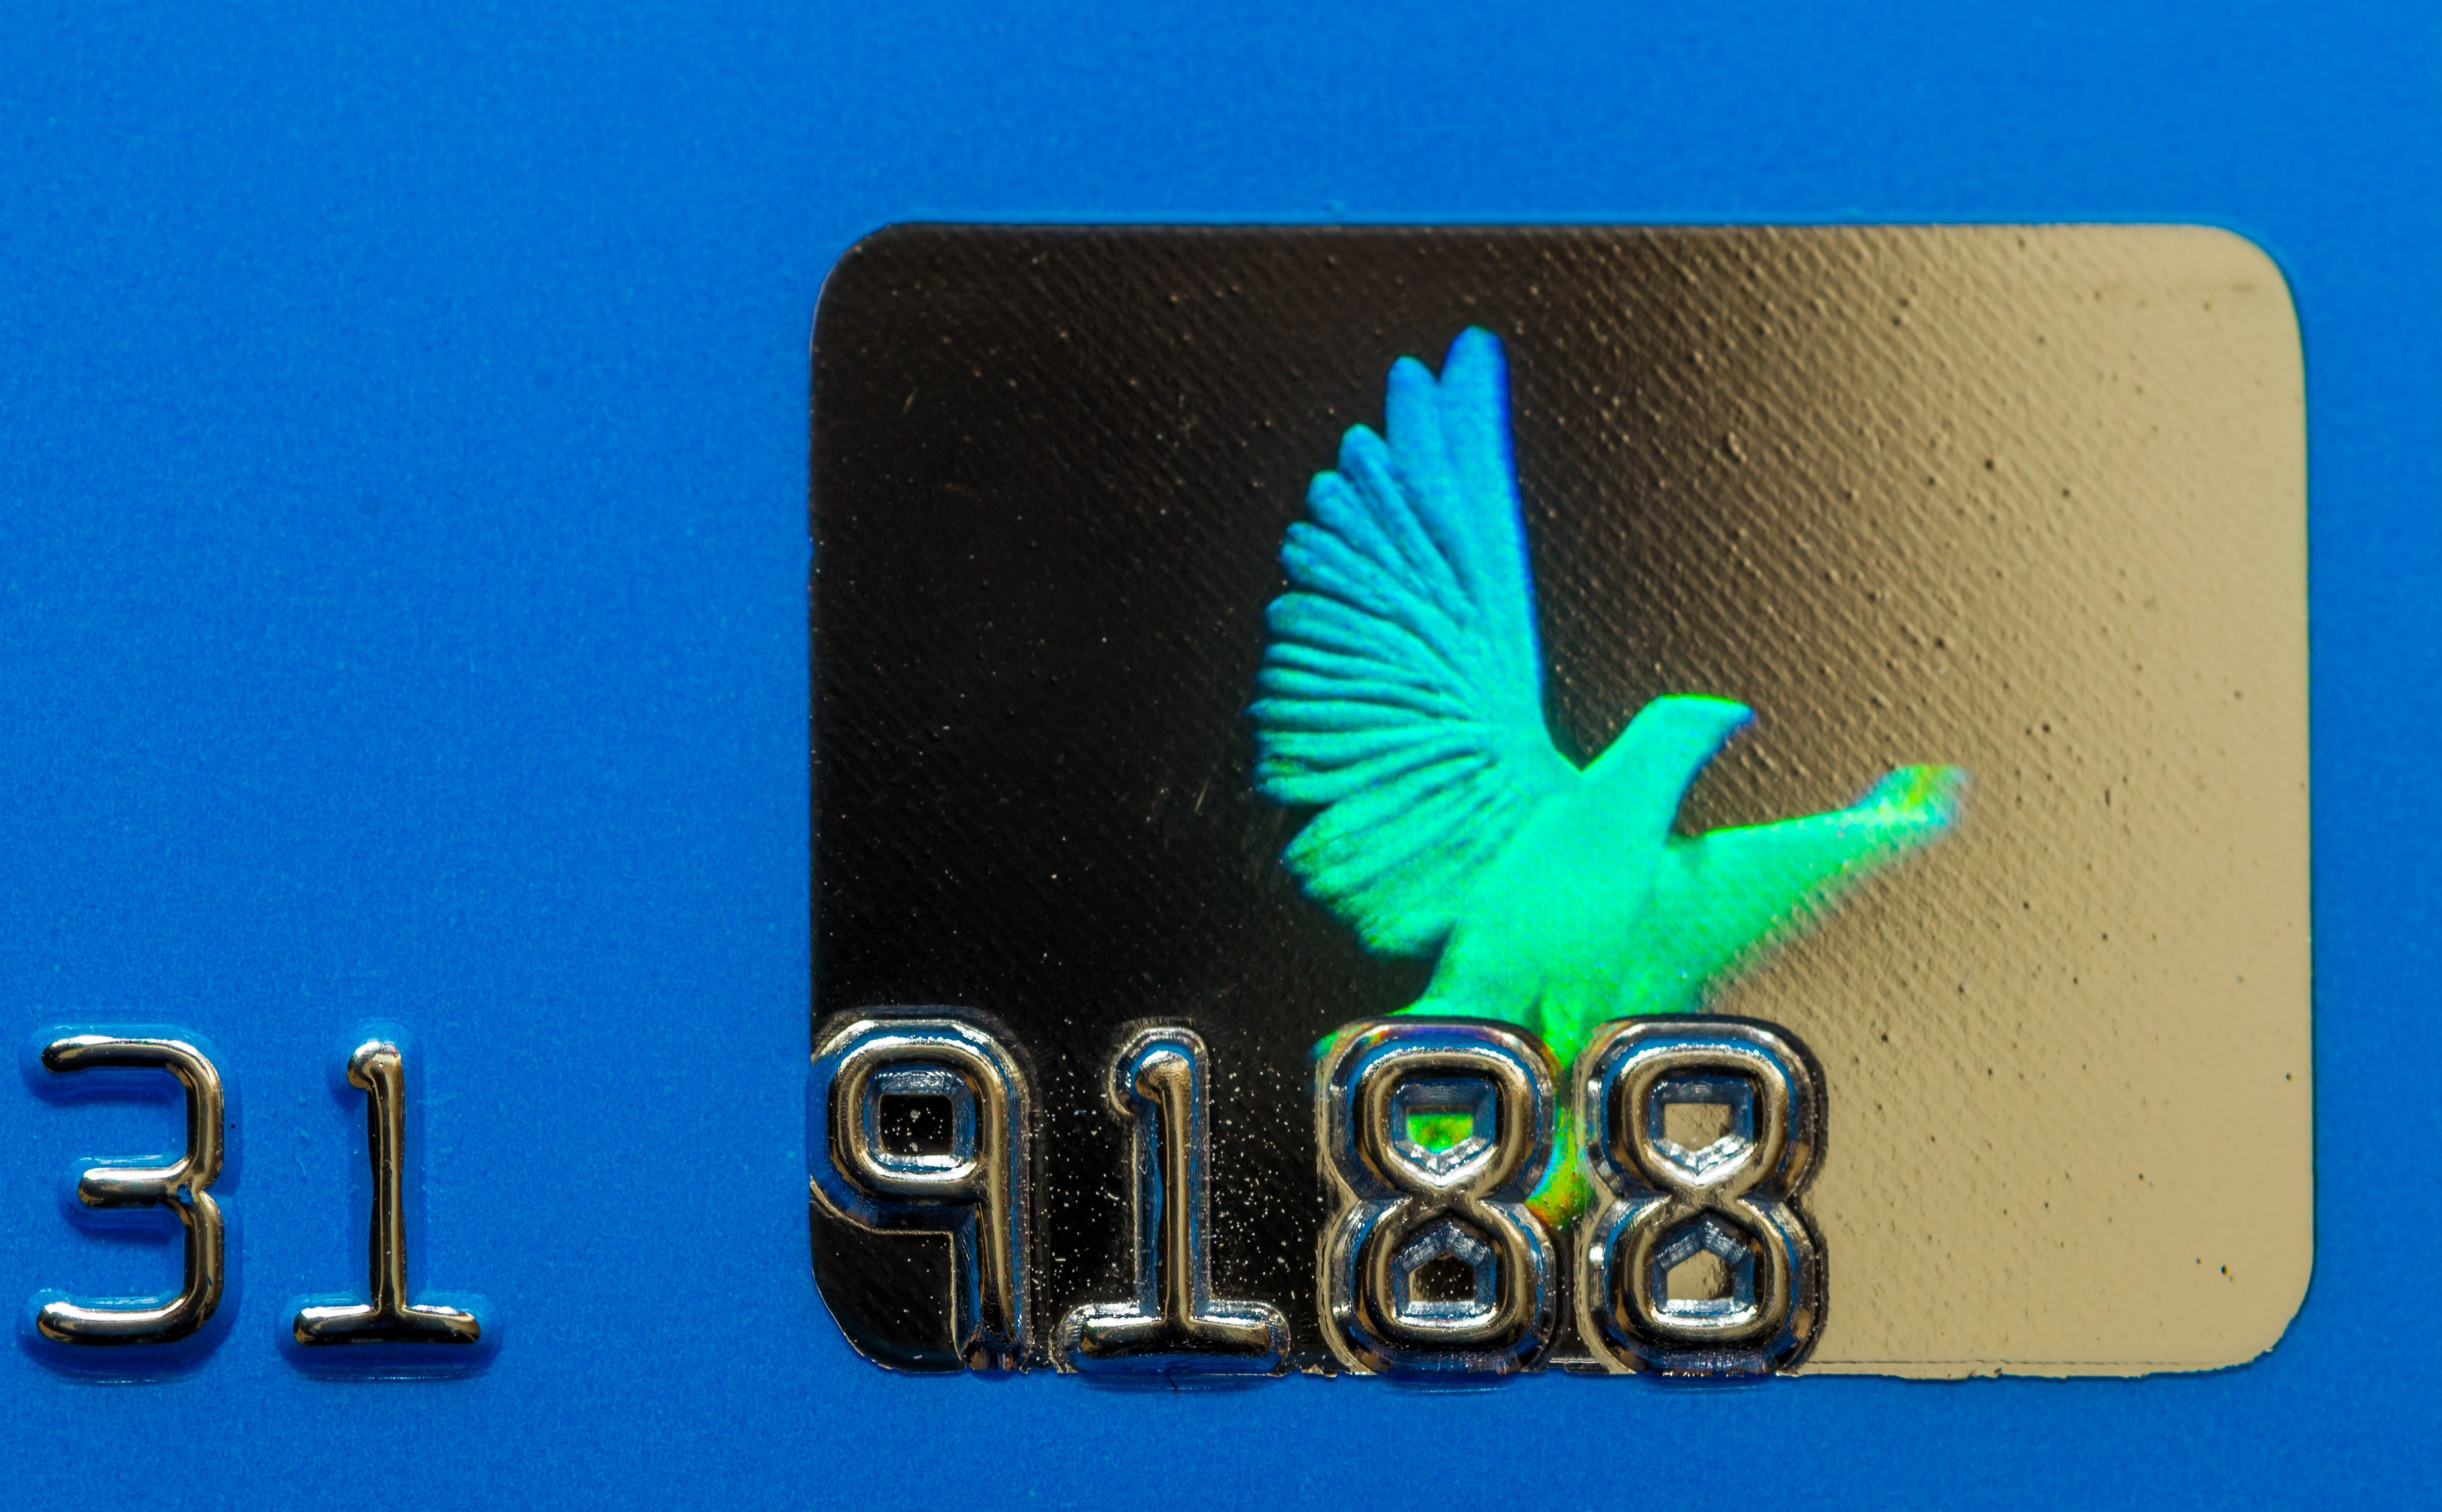 Faux Credit Card Styles with Foil Stamped Chip